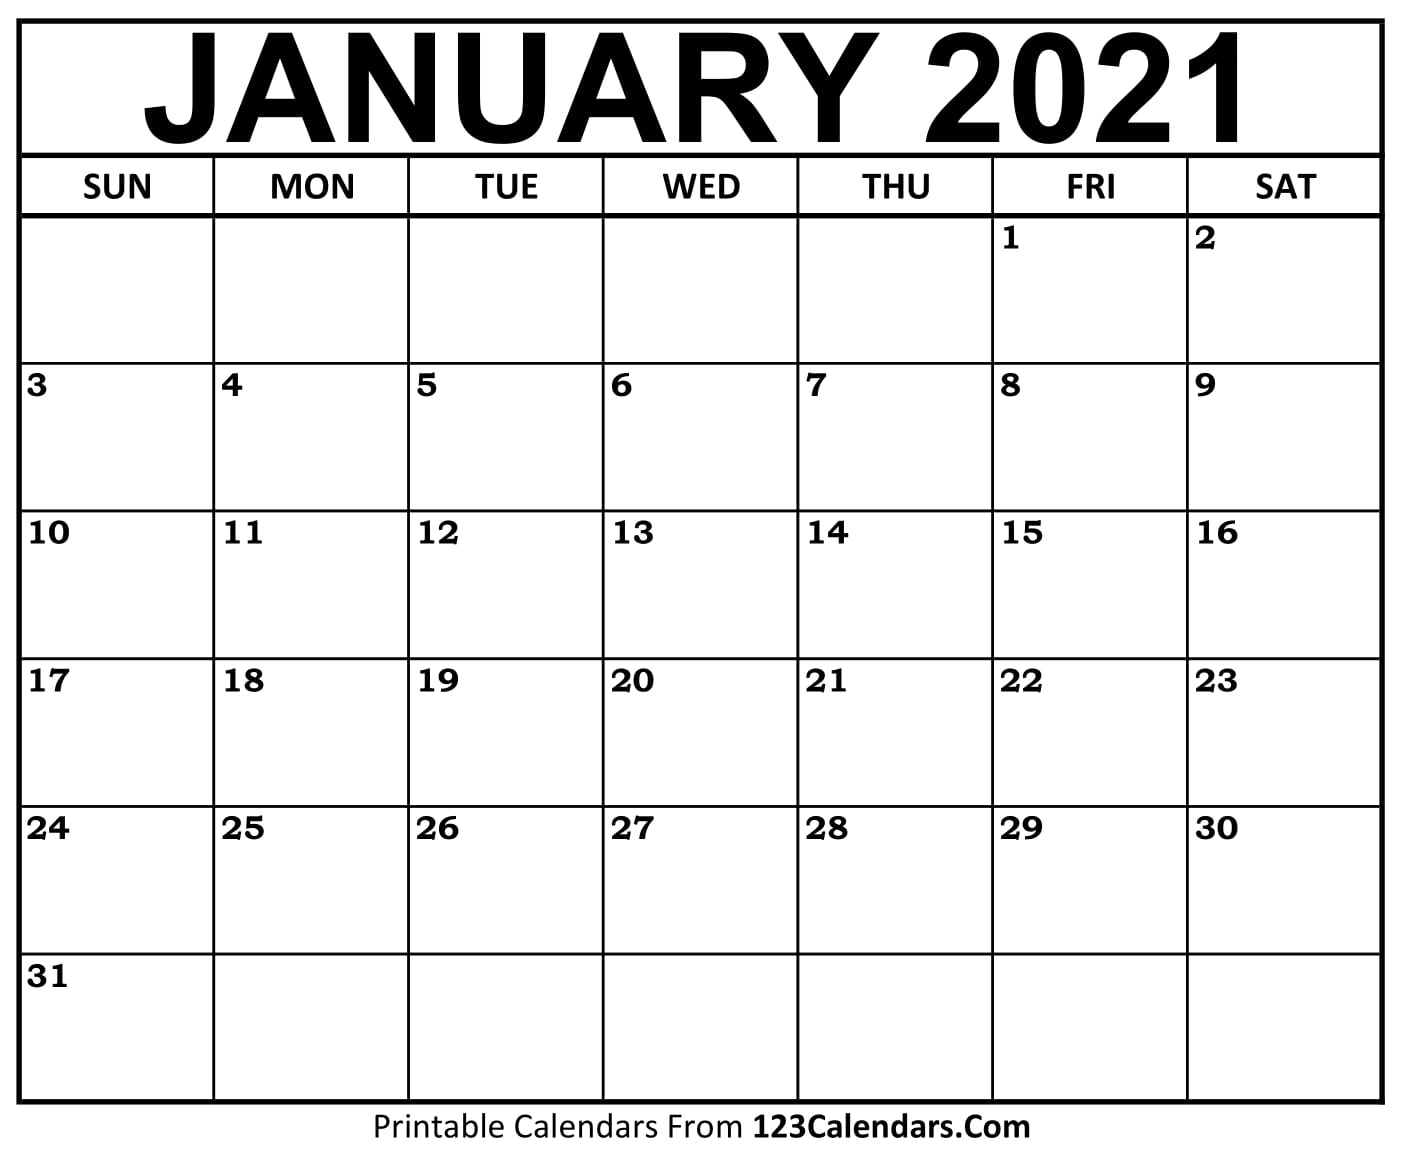 Printable January 2021 Calendar Templates | 123Calendars